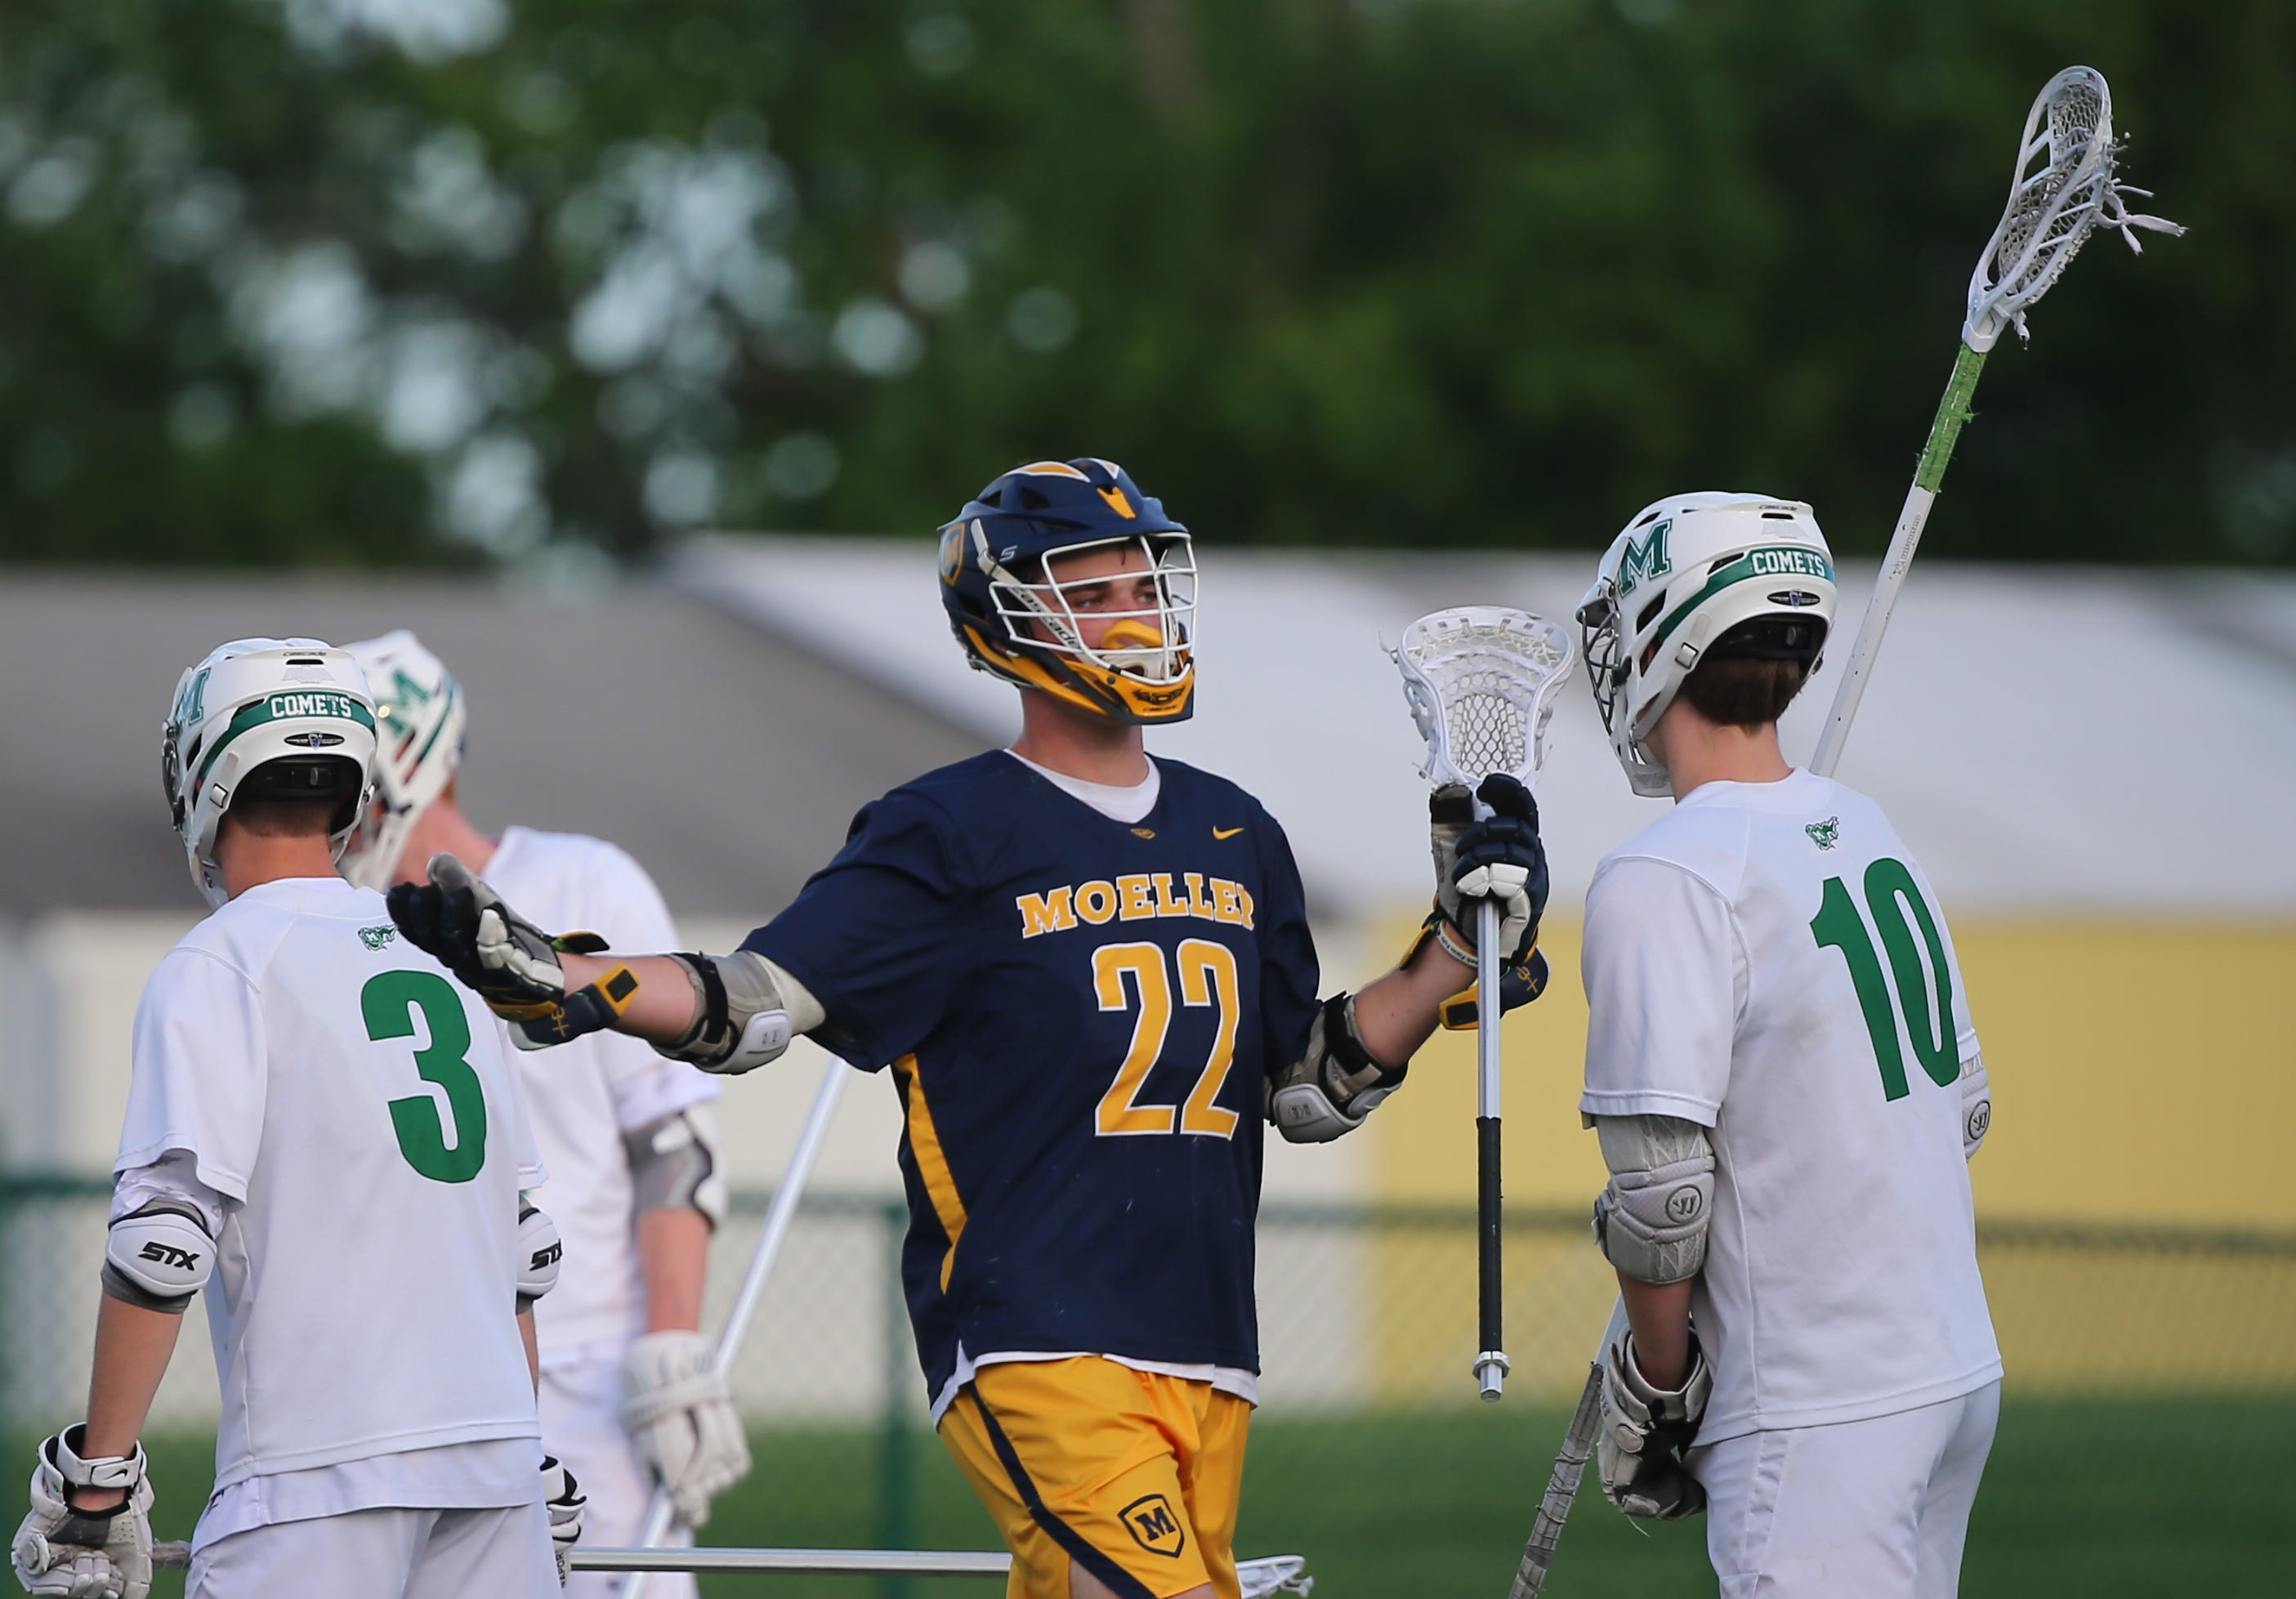 PHOTOS: Moeller lacrosse beats Mason 9-6 in regional semifinals